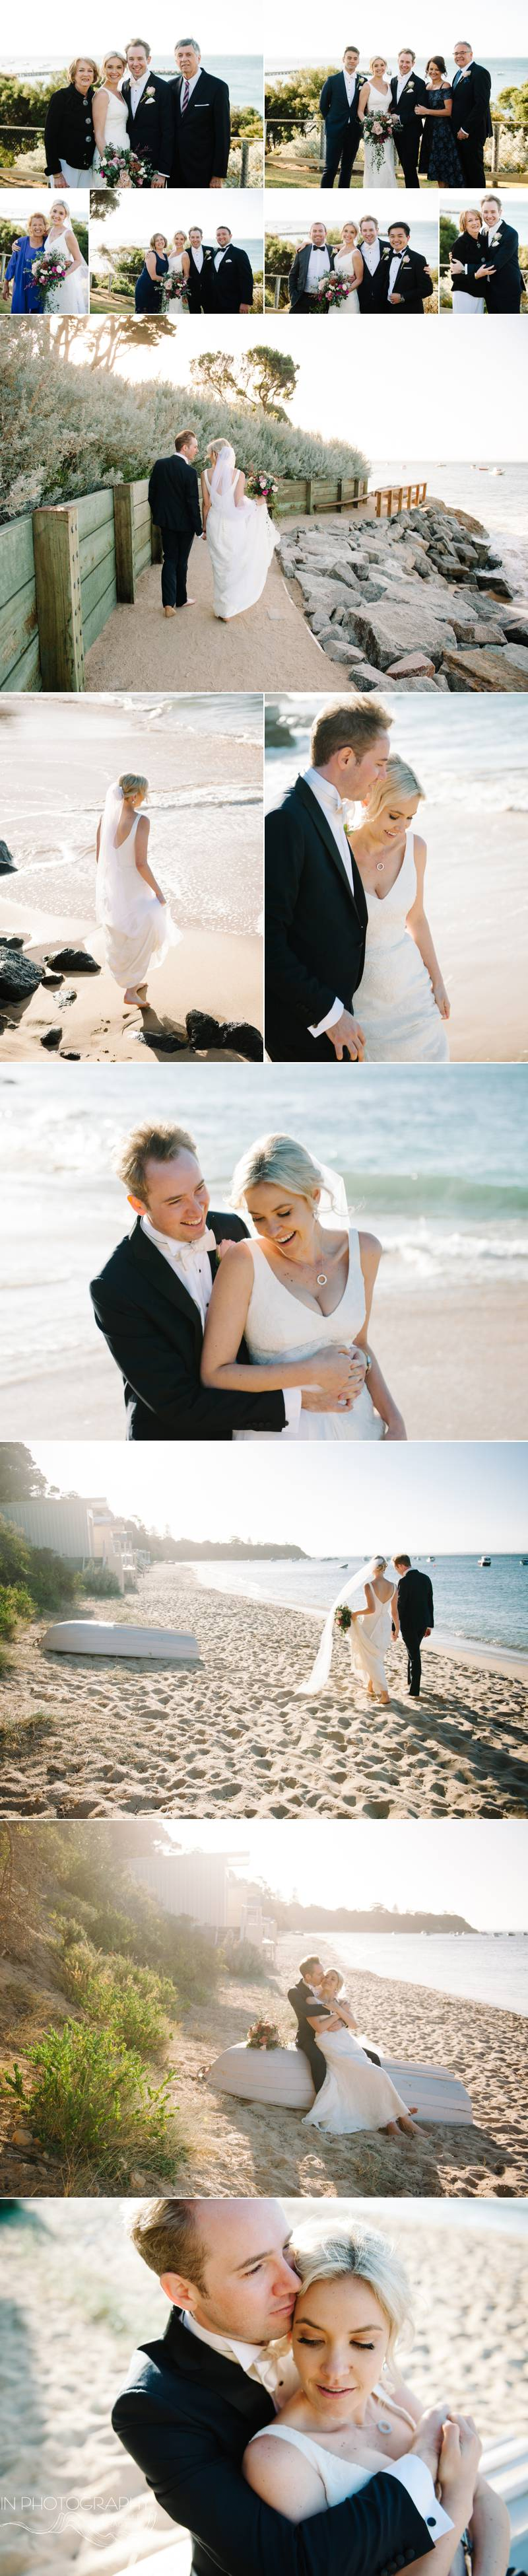 Mornington Peninsula beach wedding photographs